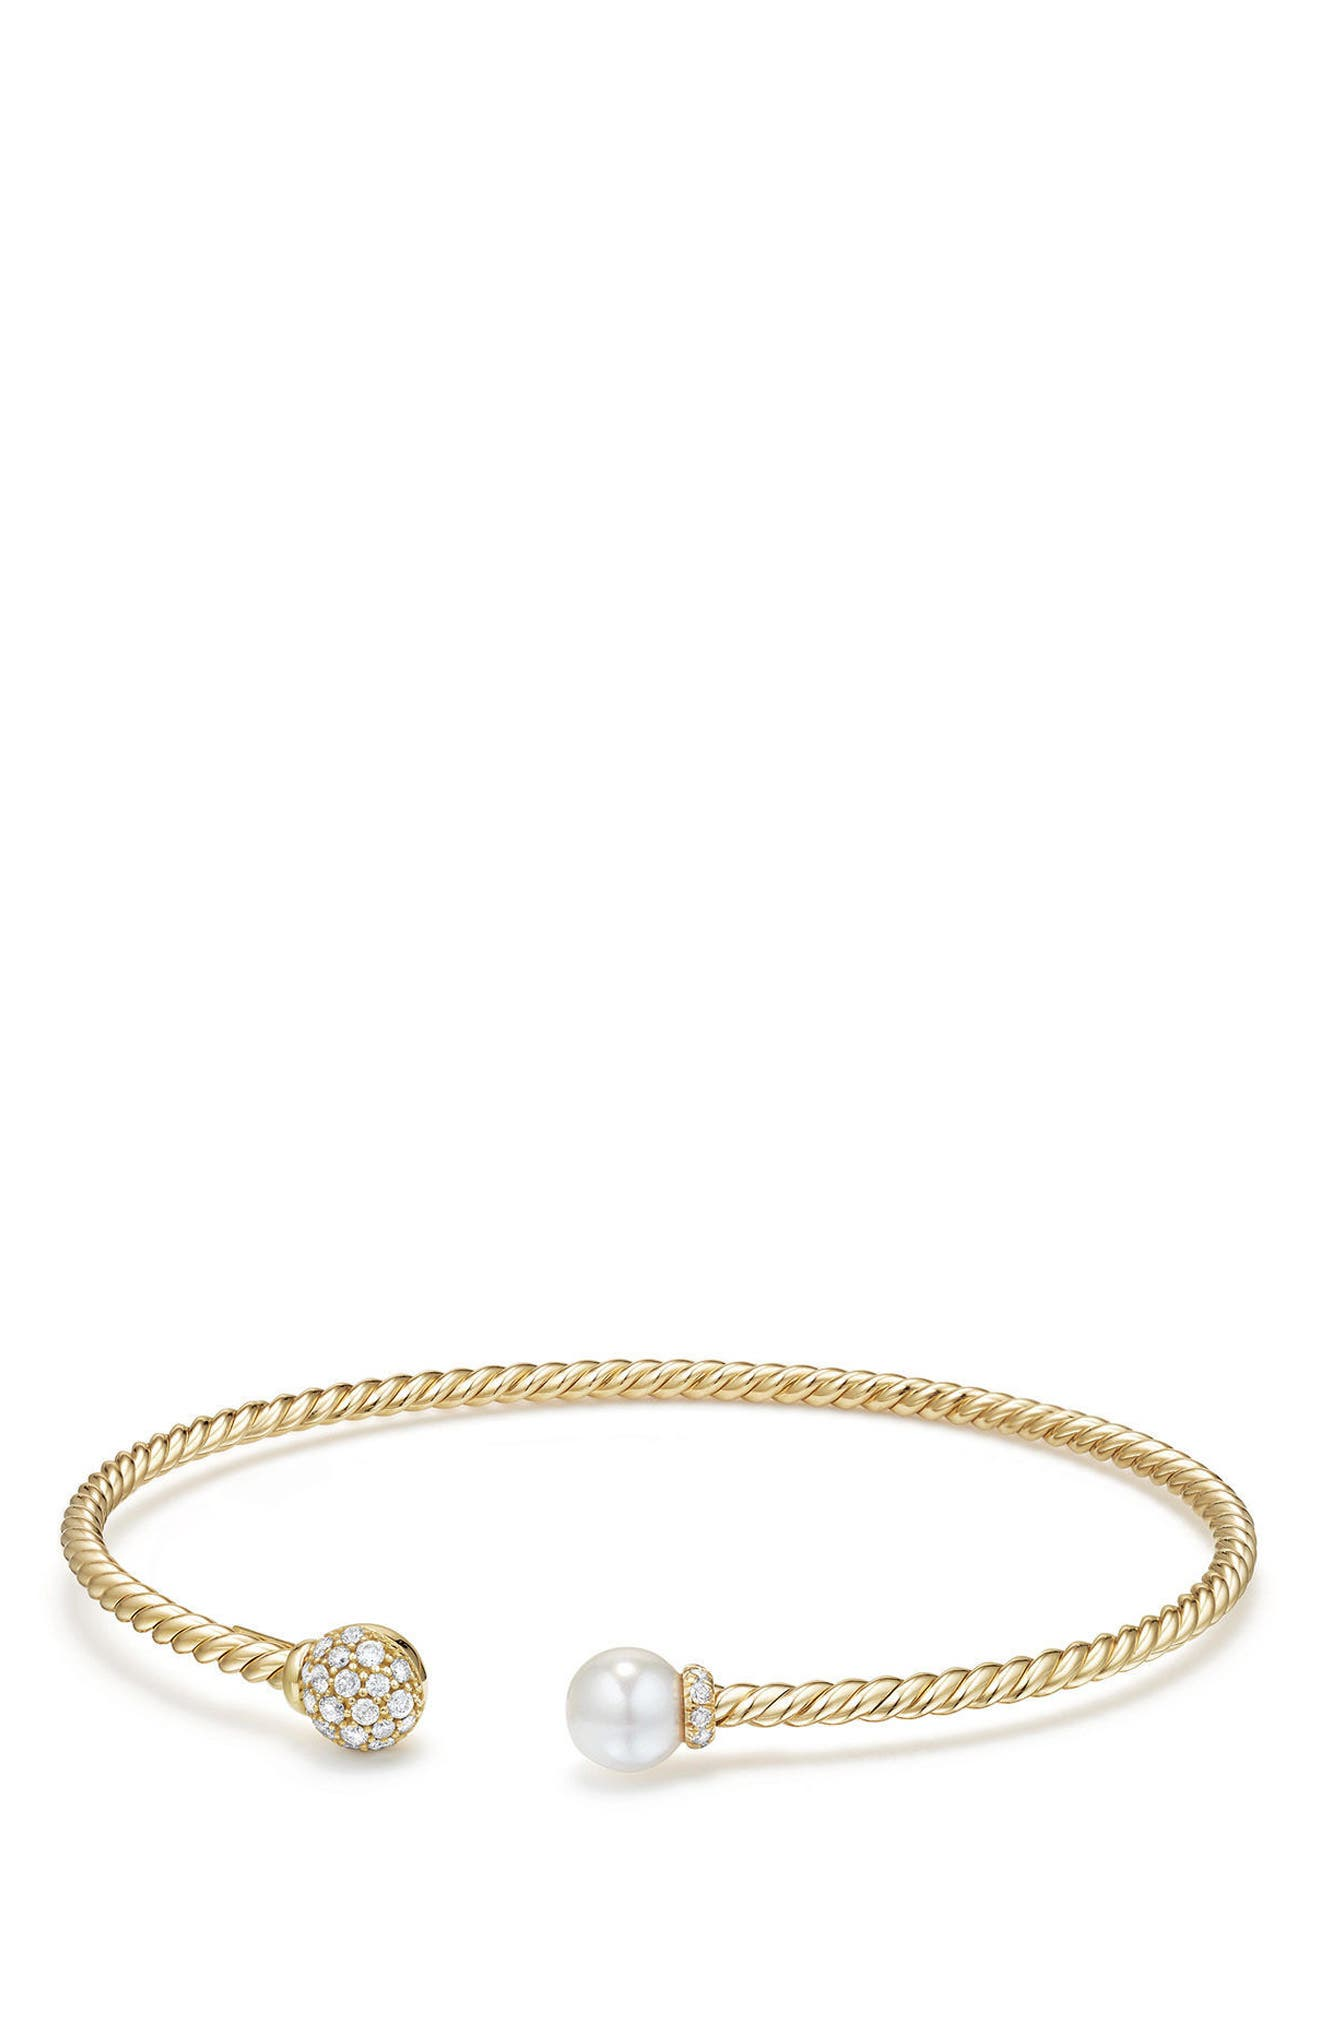 Solari Bead & Pearl Bracelet with Diamonds in 18K Gold,                             Main thumbnail 1, color,                             YELLOW GOLD/ DIAMOND/ PEARL